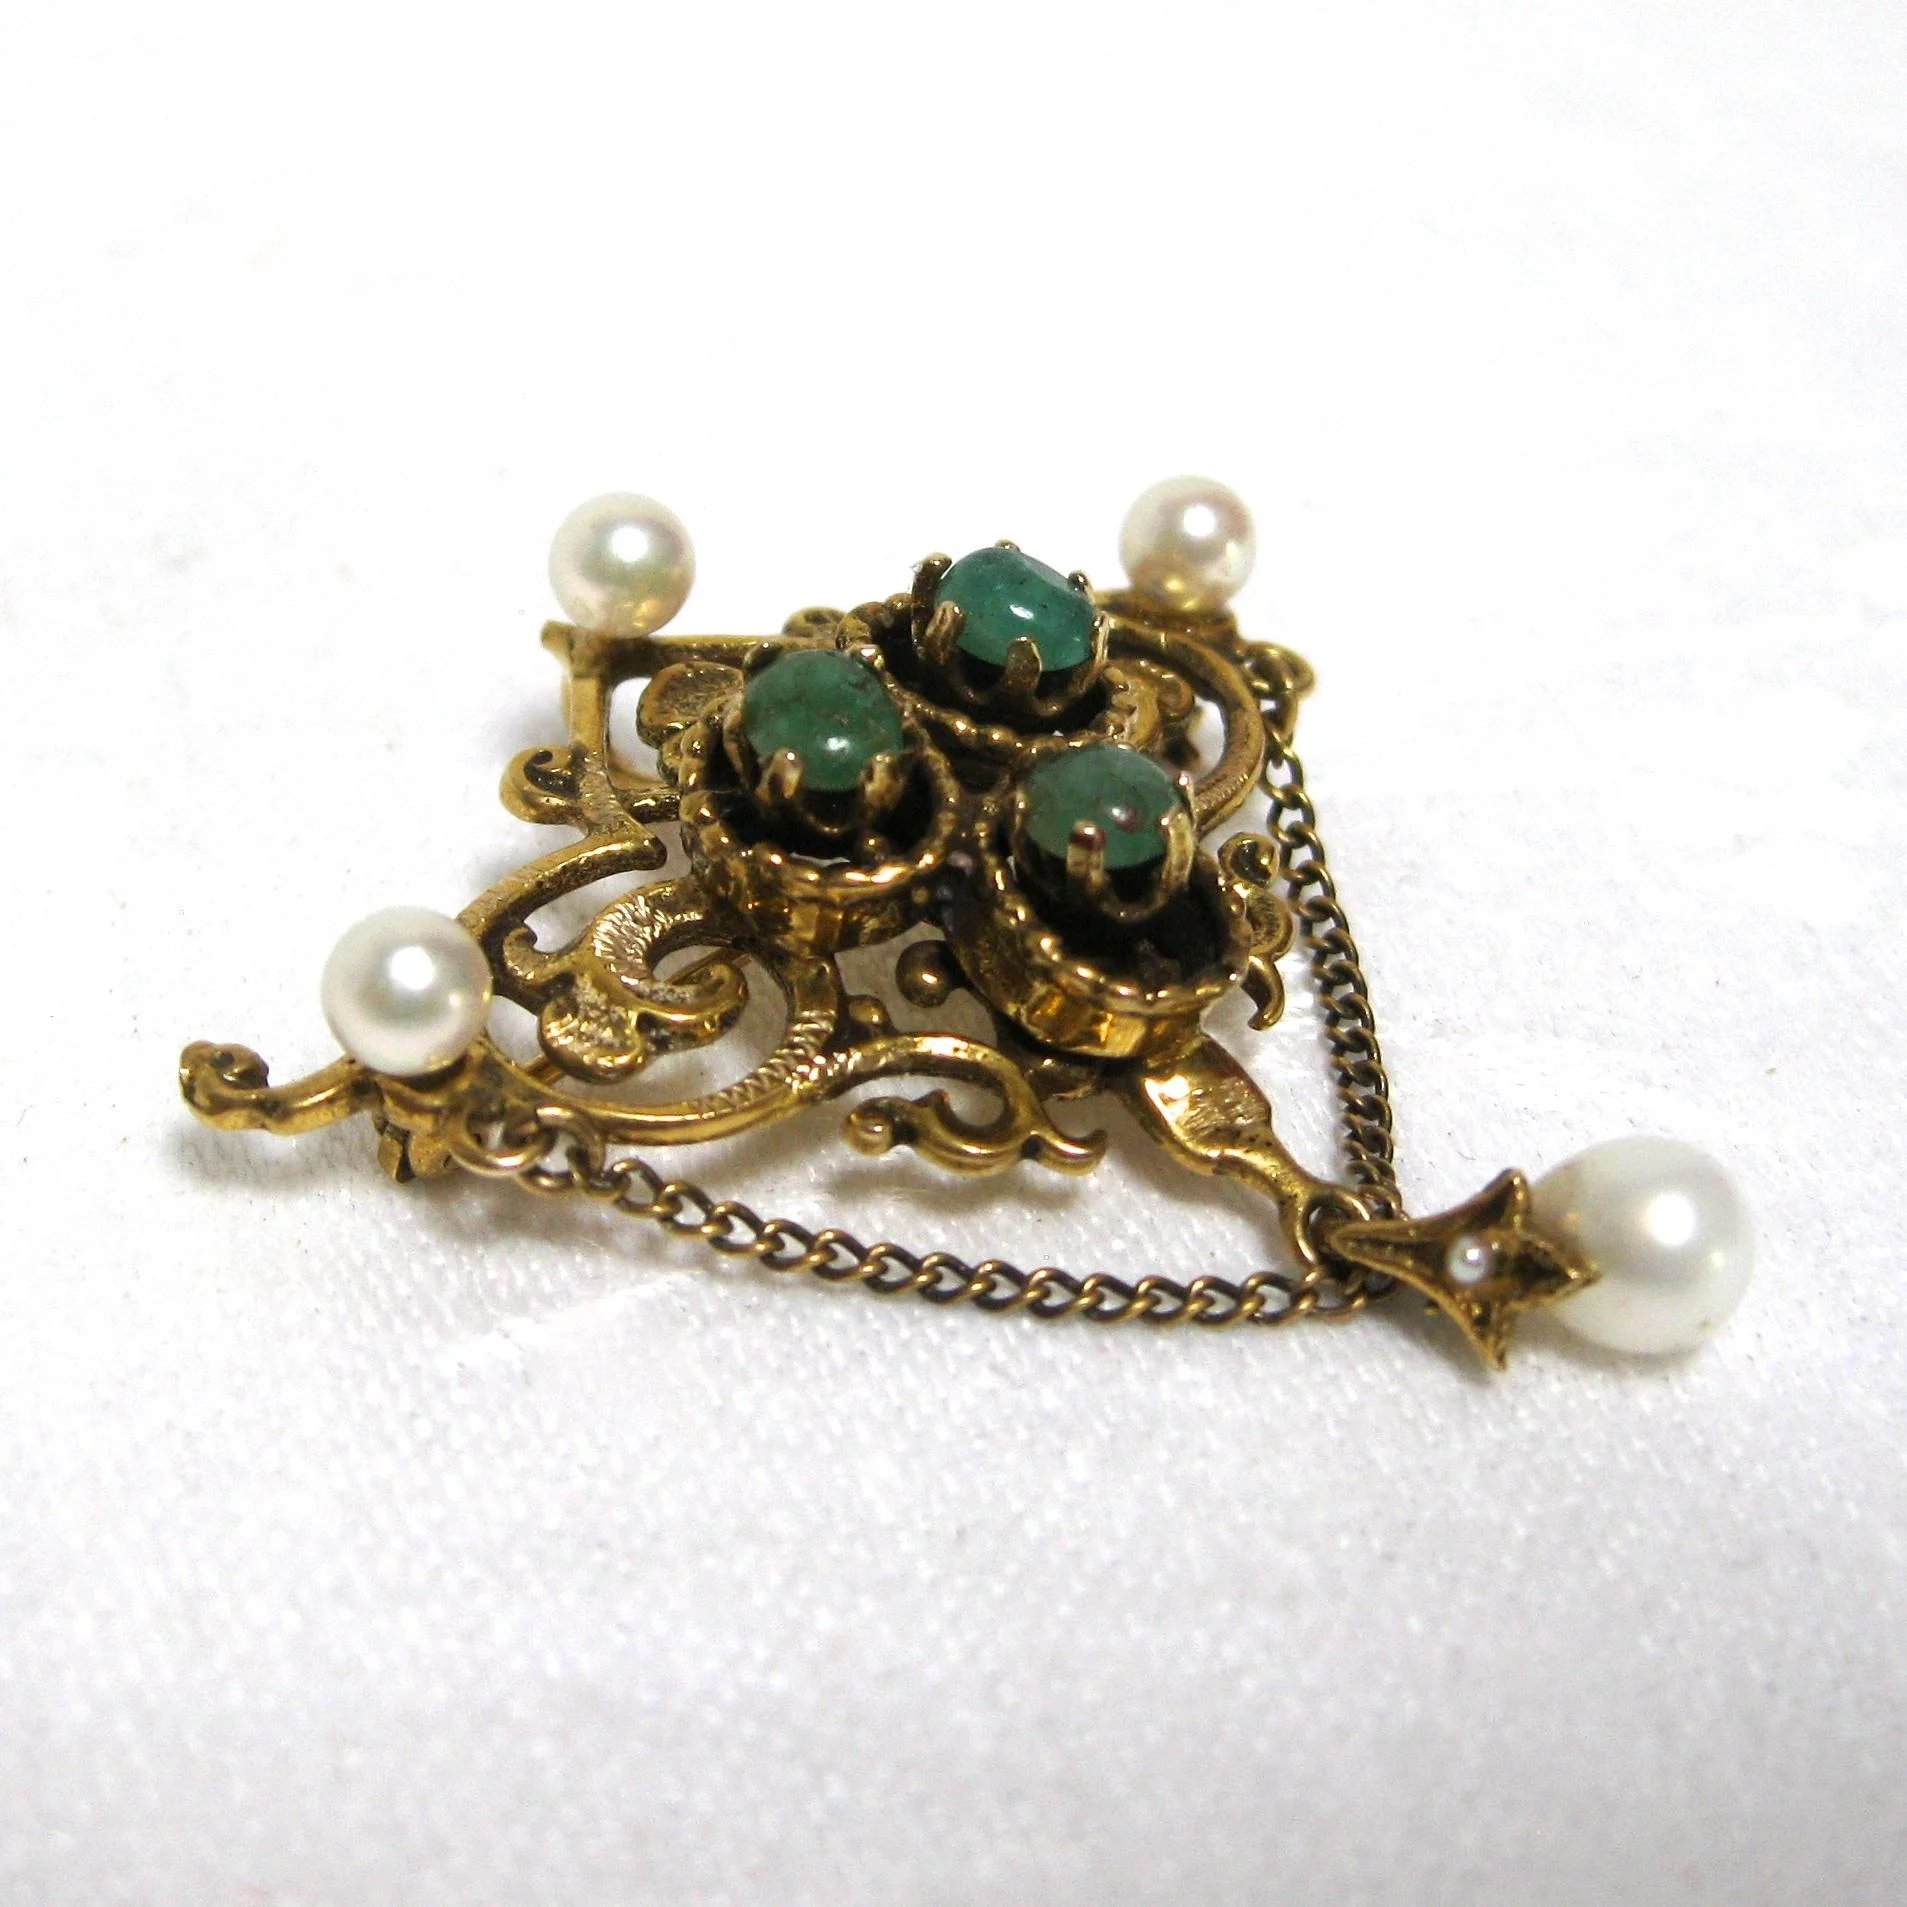 pearl brooch cabochon emerald gold to item click and expand full revival renaissance